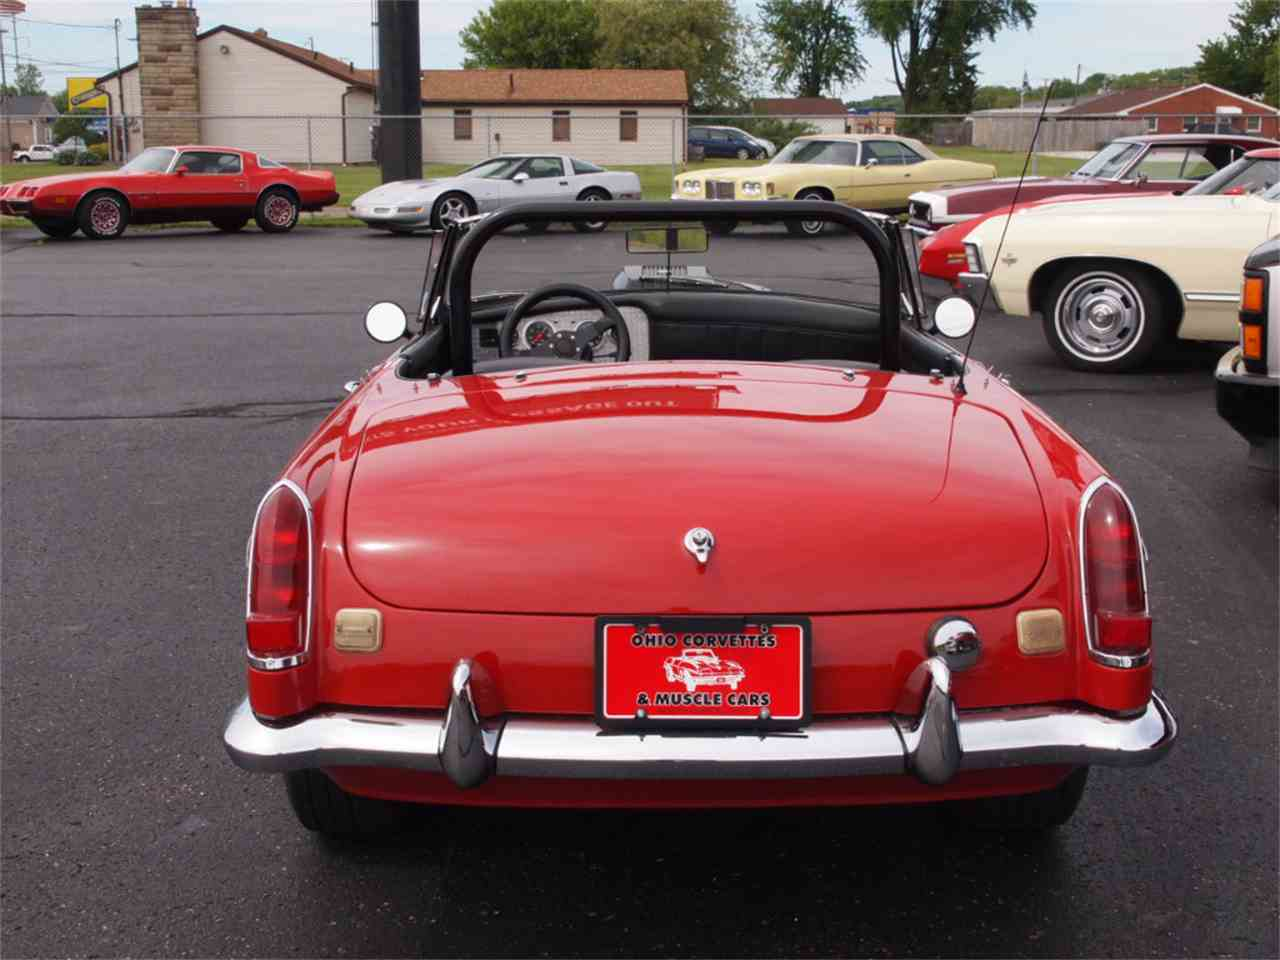 Large Picture of 1968 MG MGB located in Ohio Offered by Ohio Corvettes and Muscle Cars - L59M